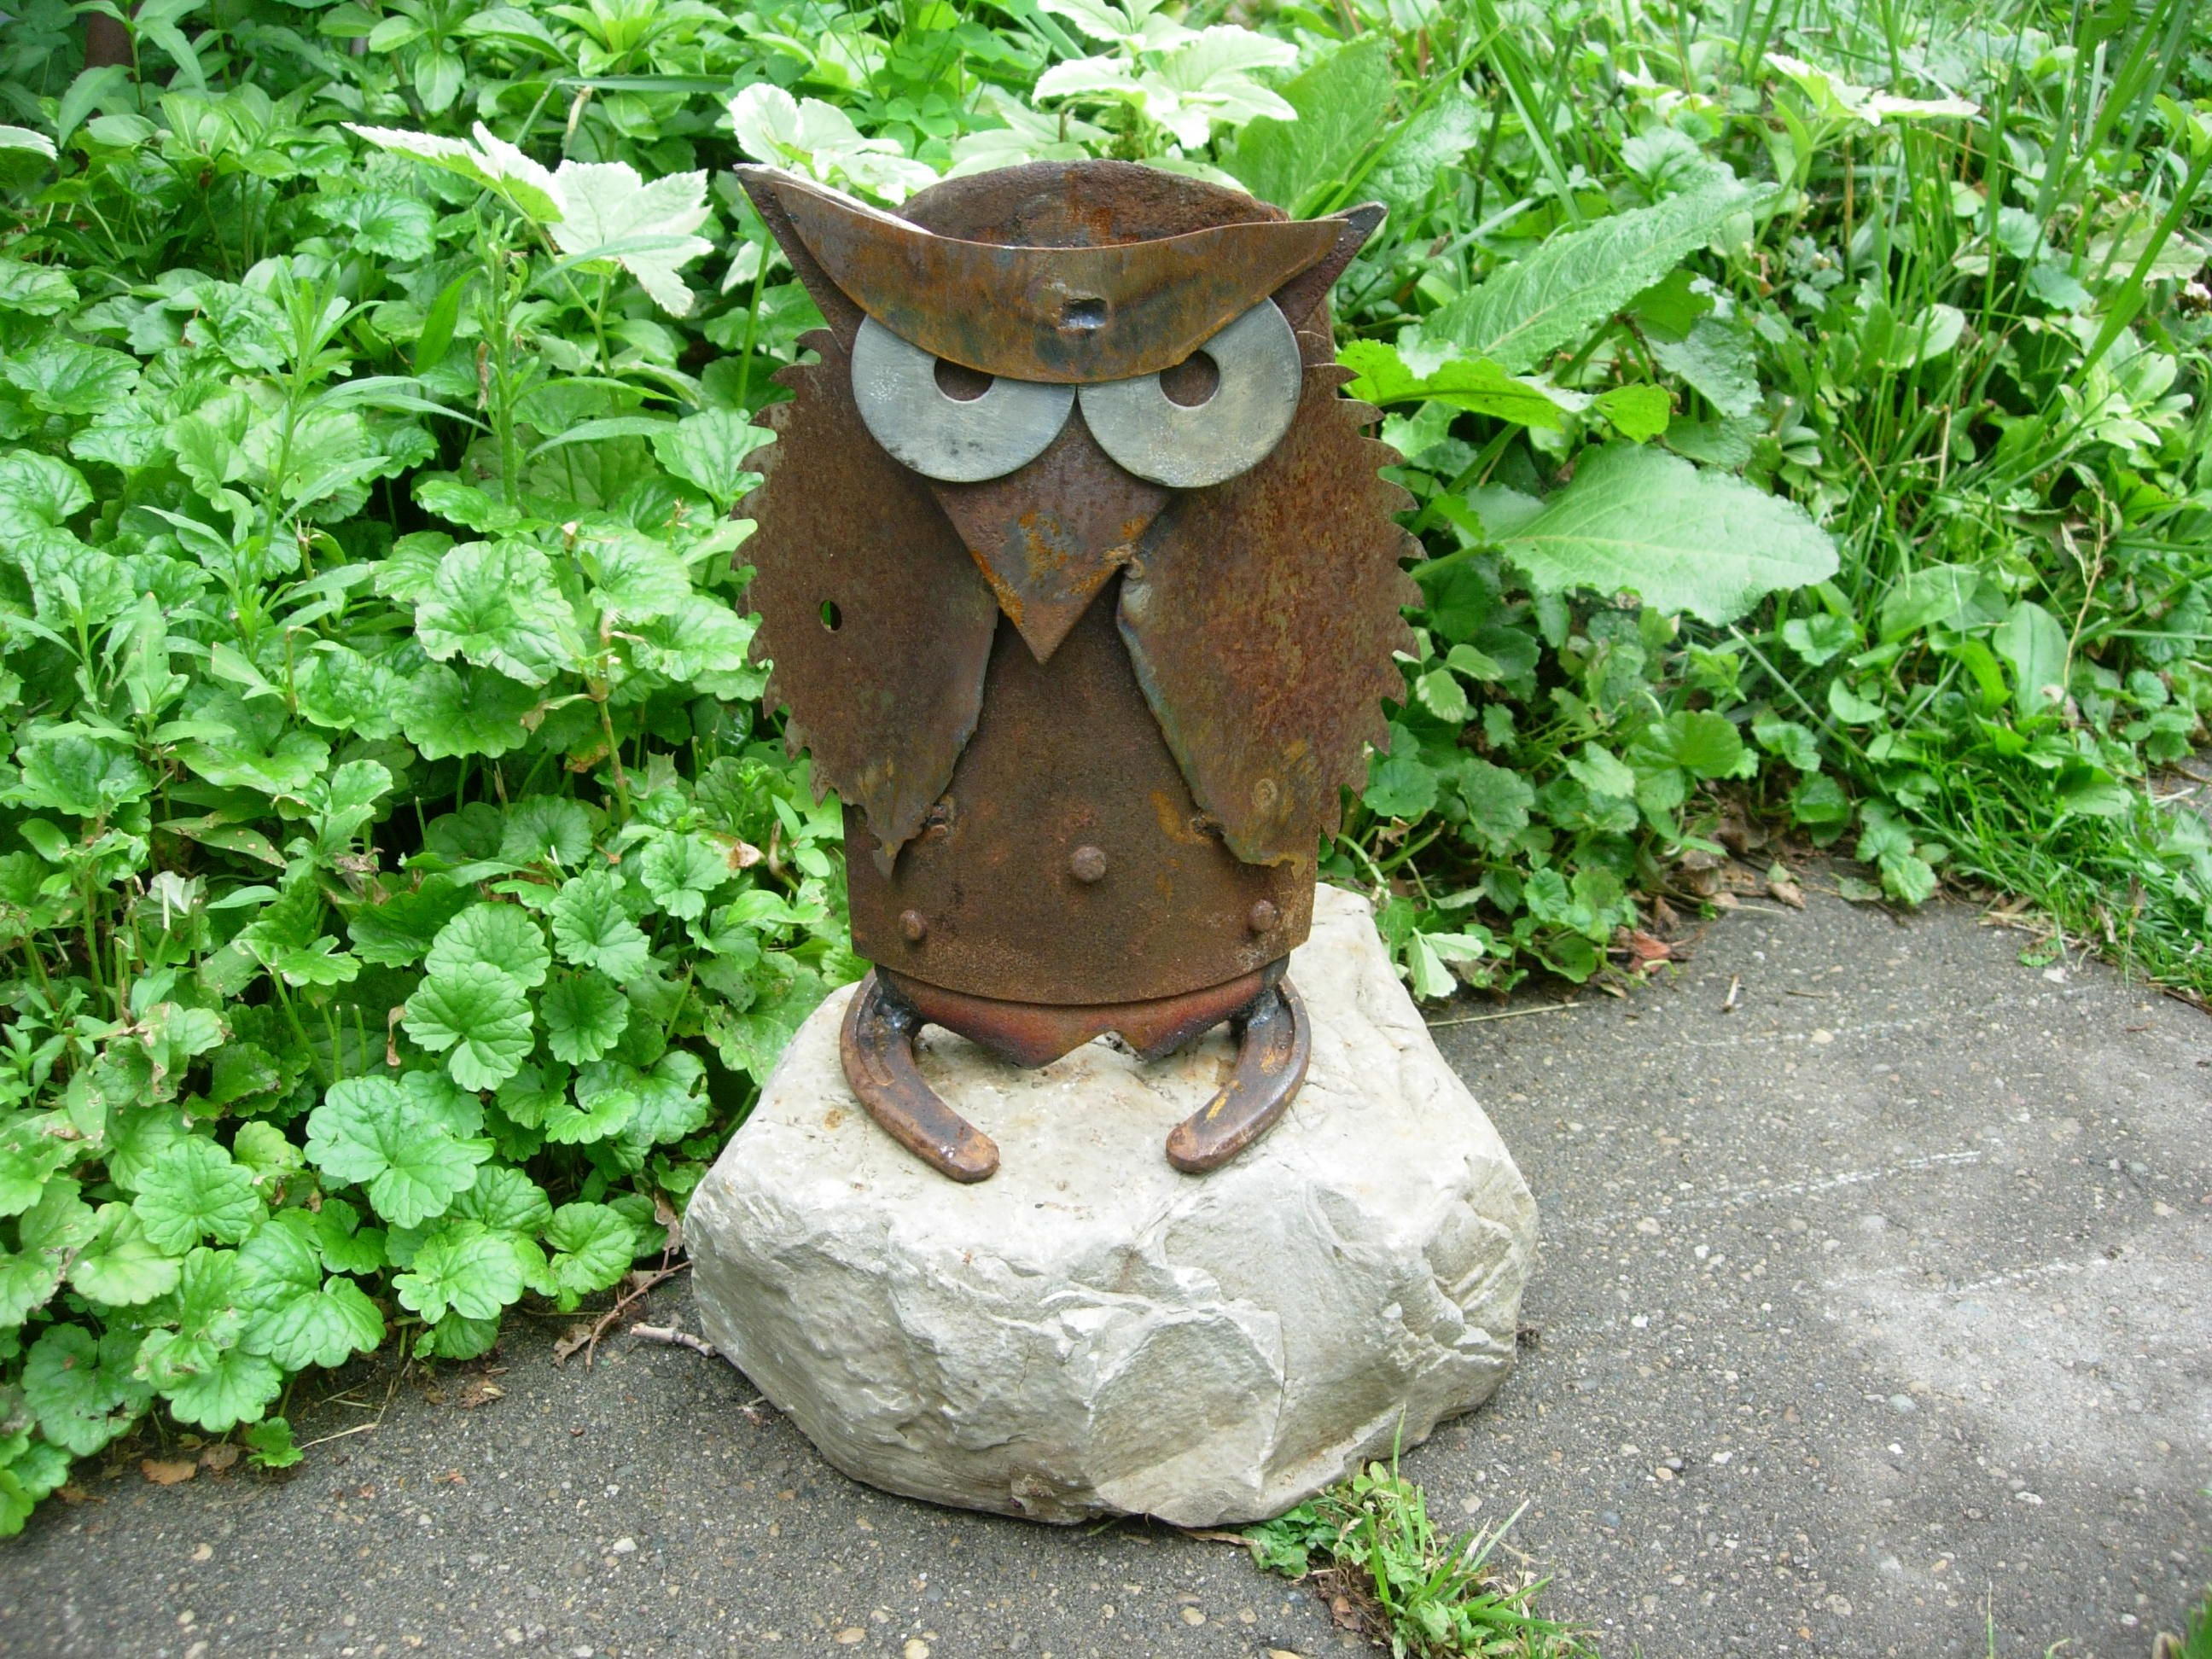 Owl On Rock | Metal Junk Yard Art | Pinterest: pinterest.com/pin/519391769497589277